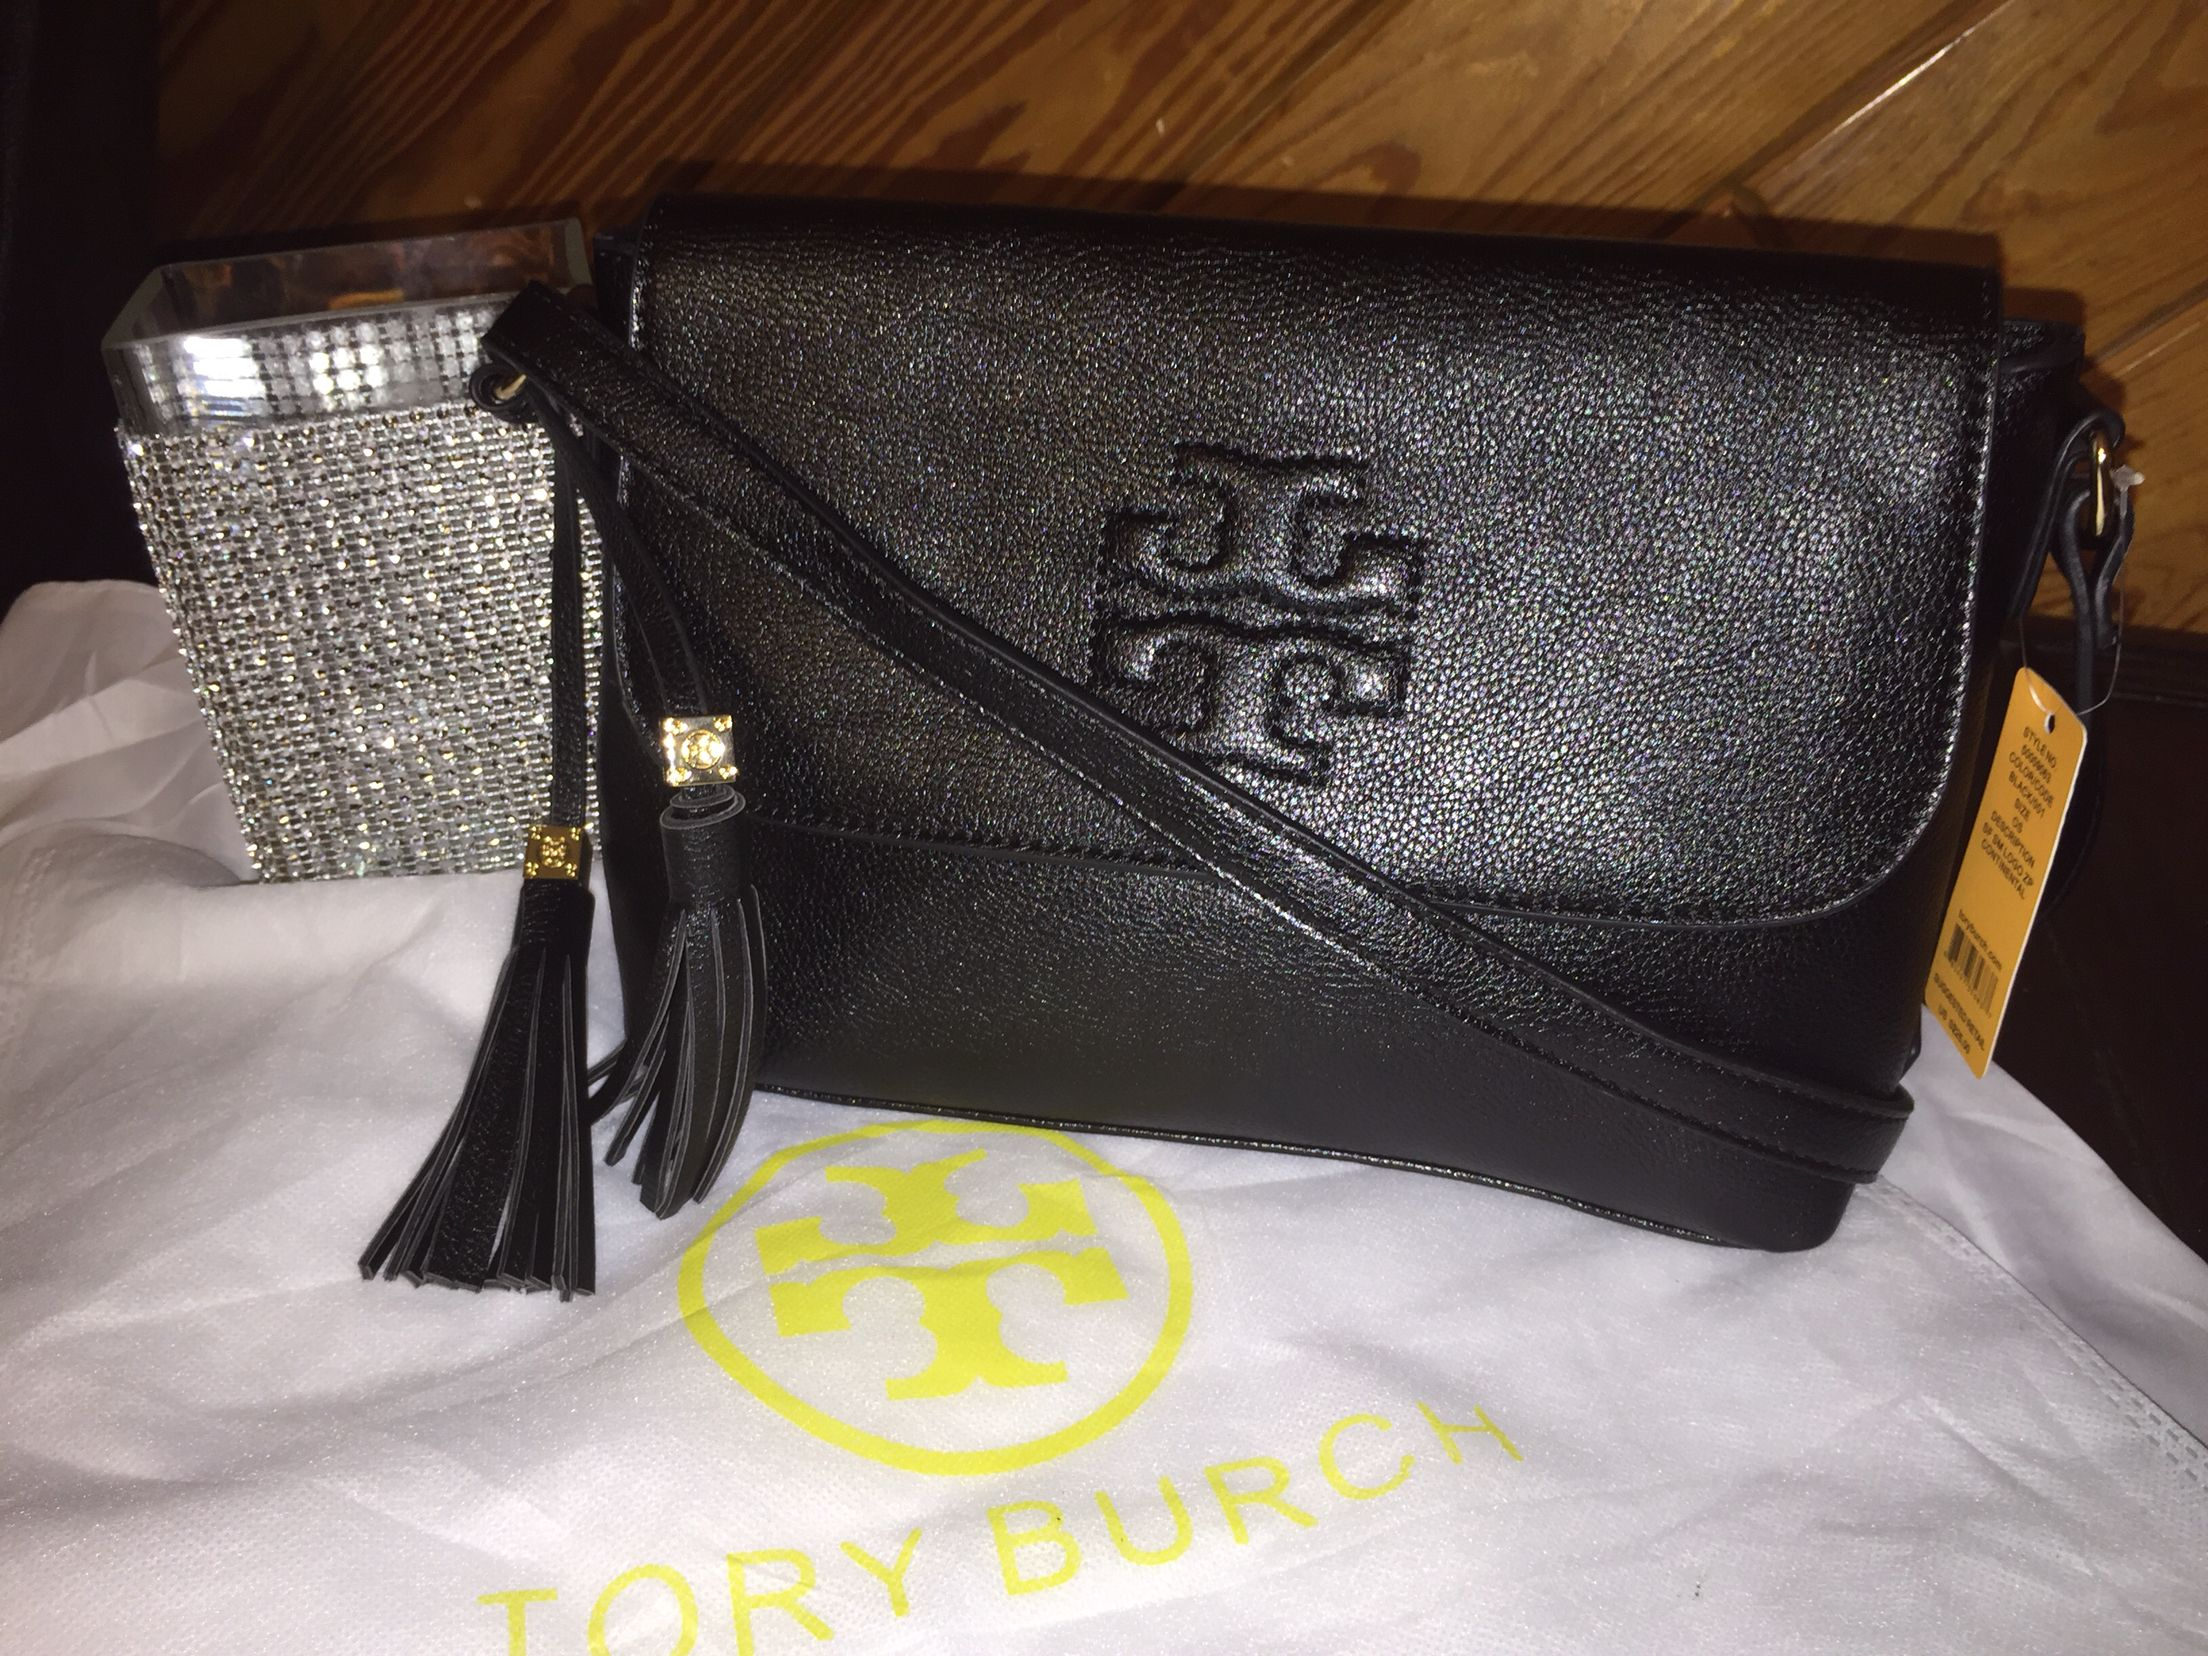 Tory Burch black soft Crossbody $49.00 plus tax and shipping